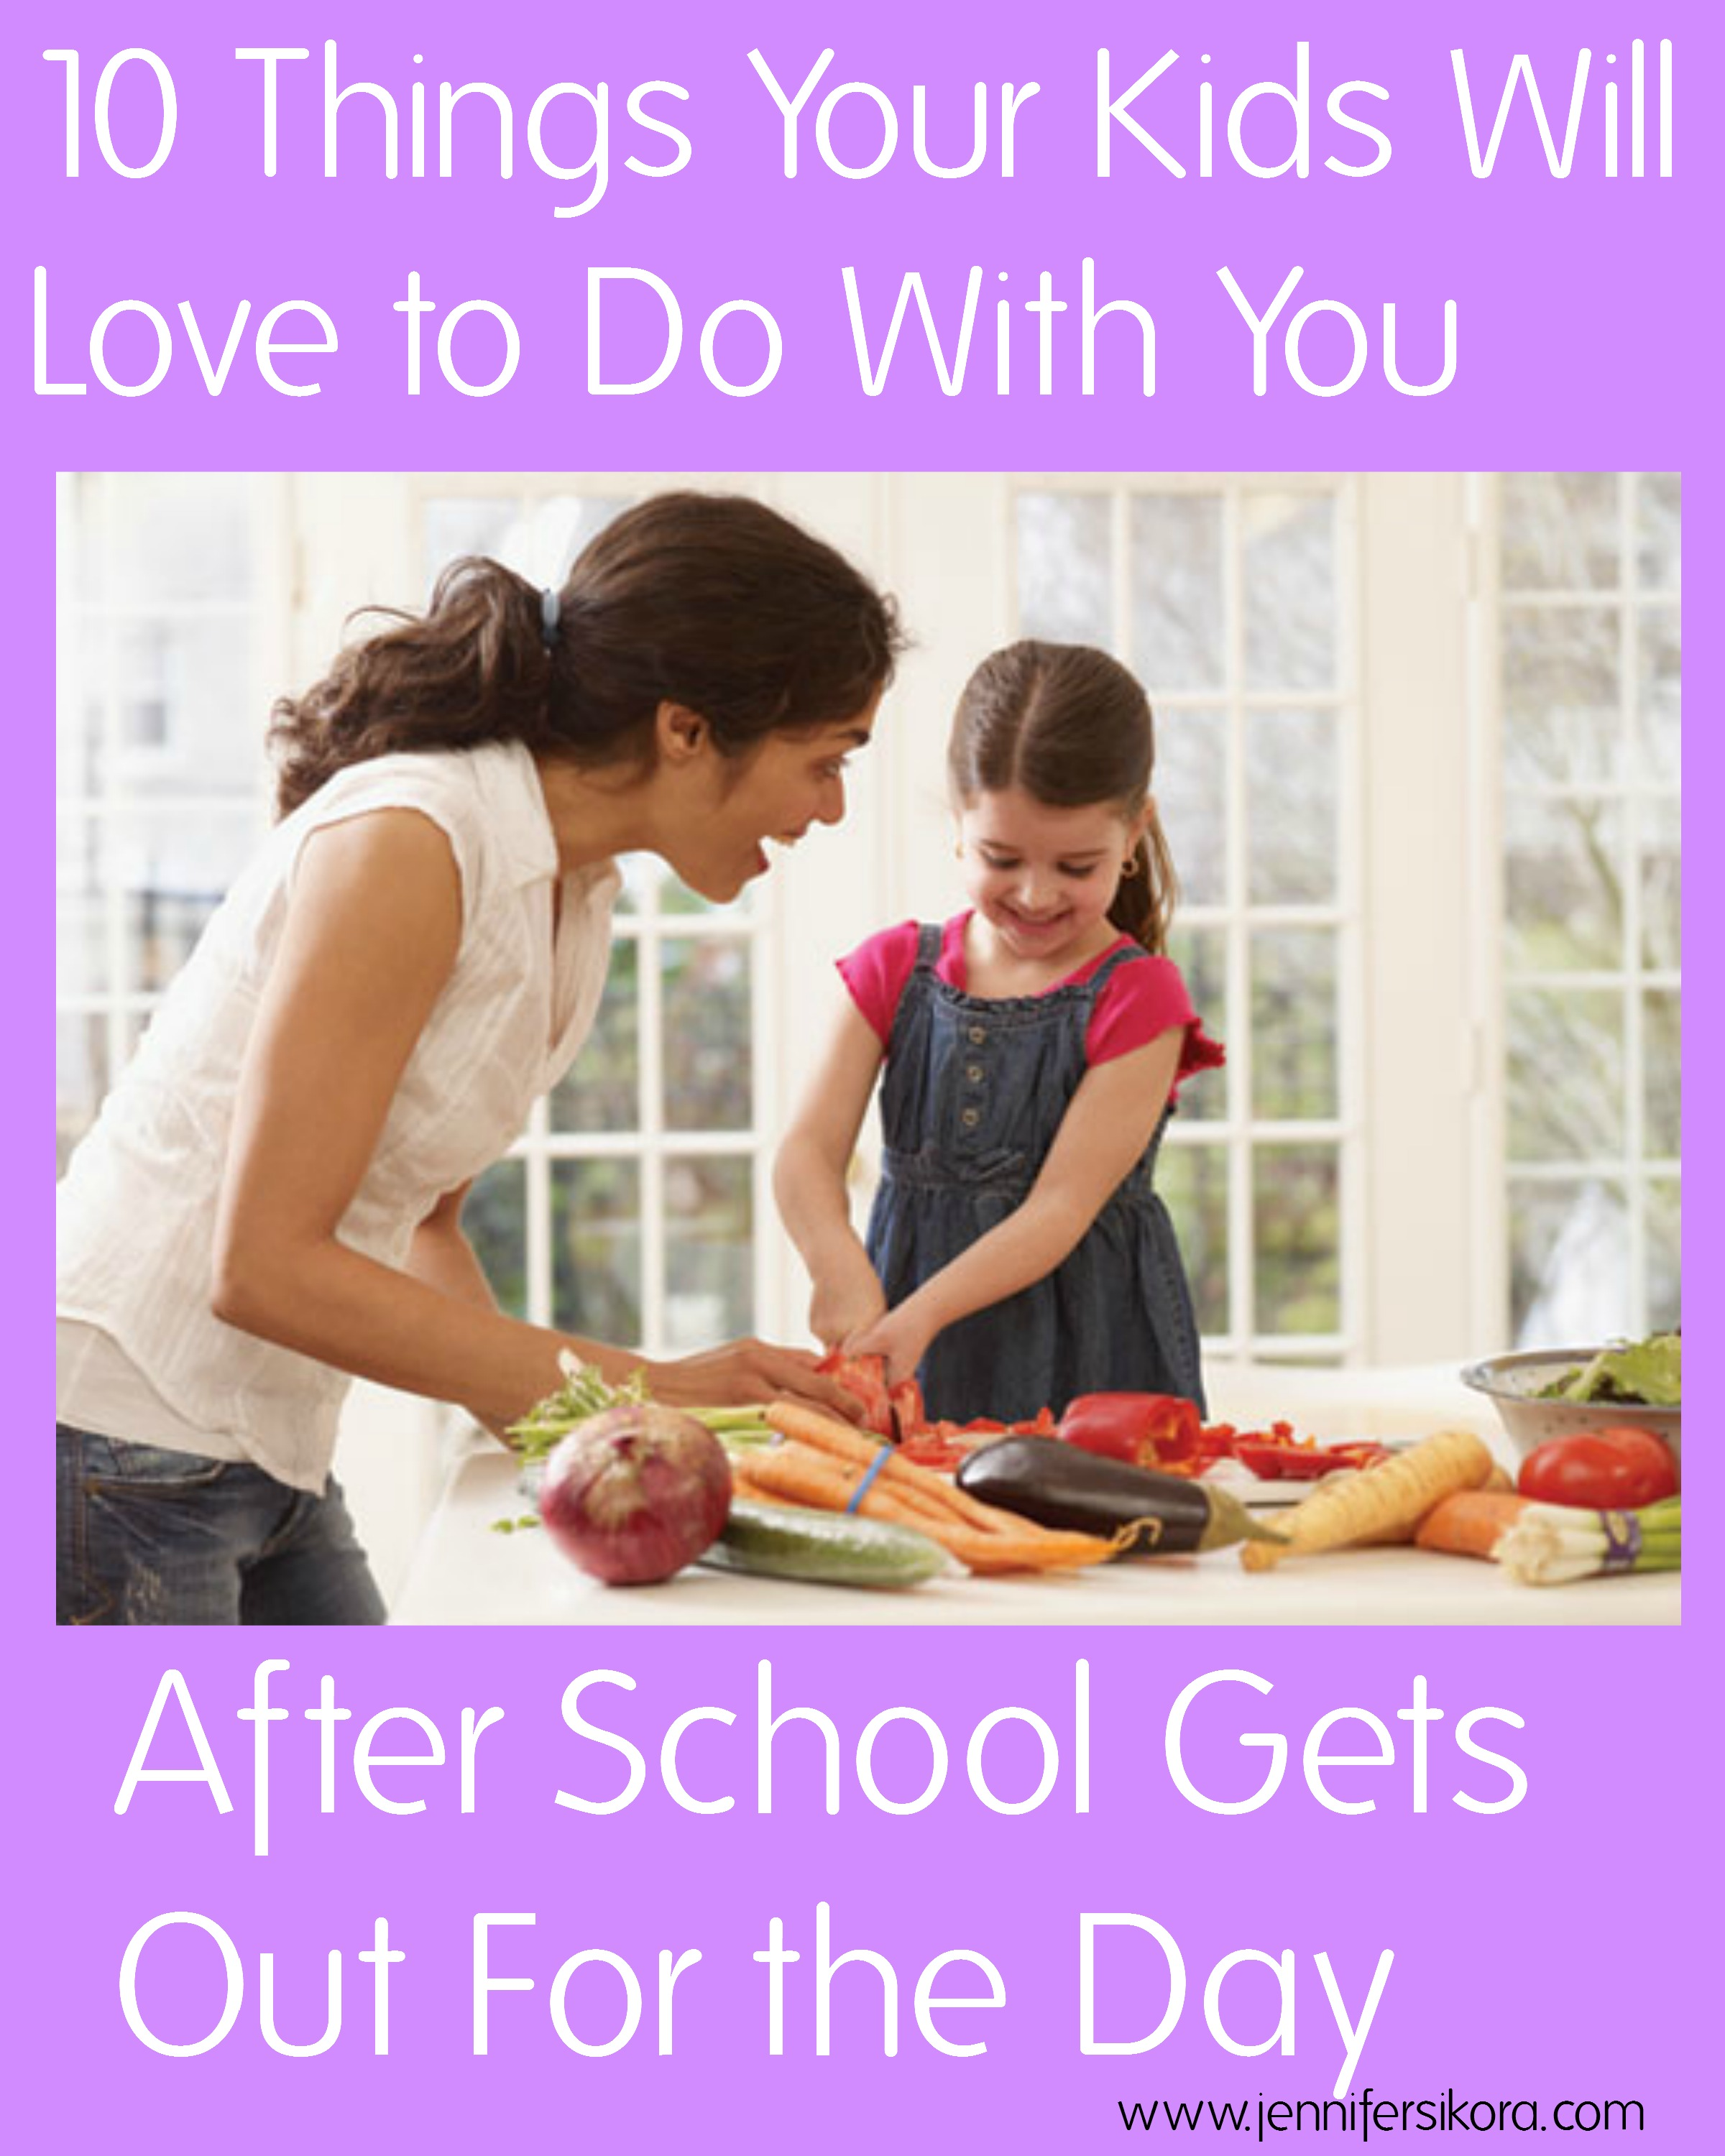 10 Things Your Kids Will Love to Do With You After School Gets Out For the Day